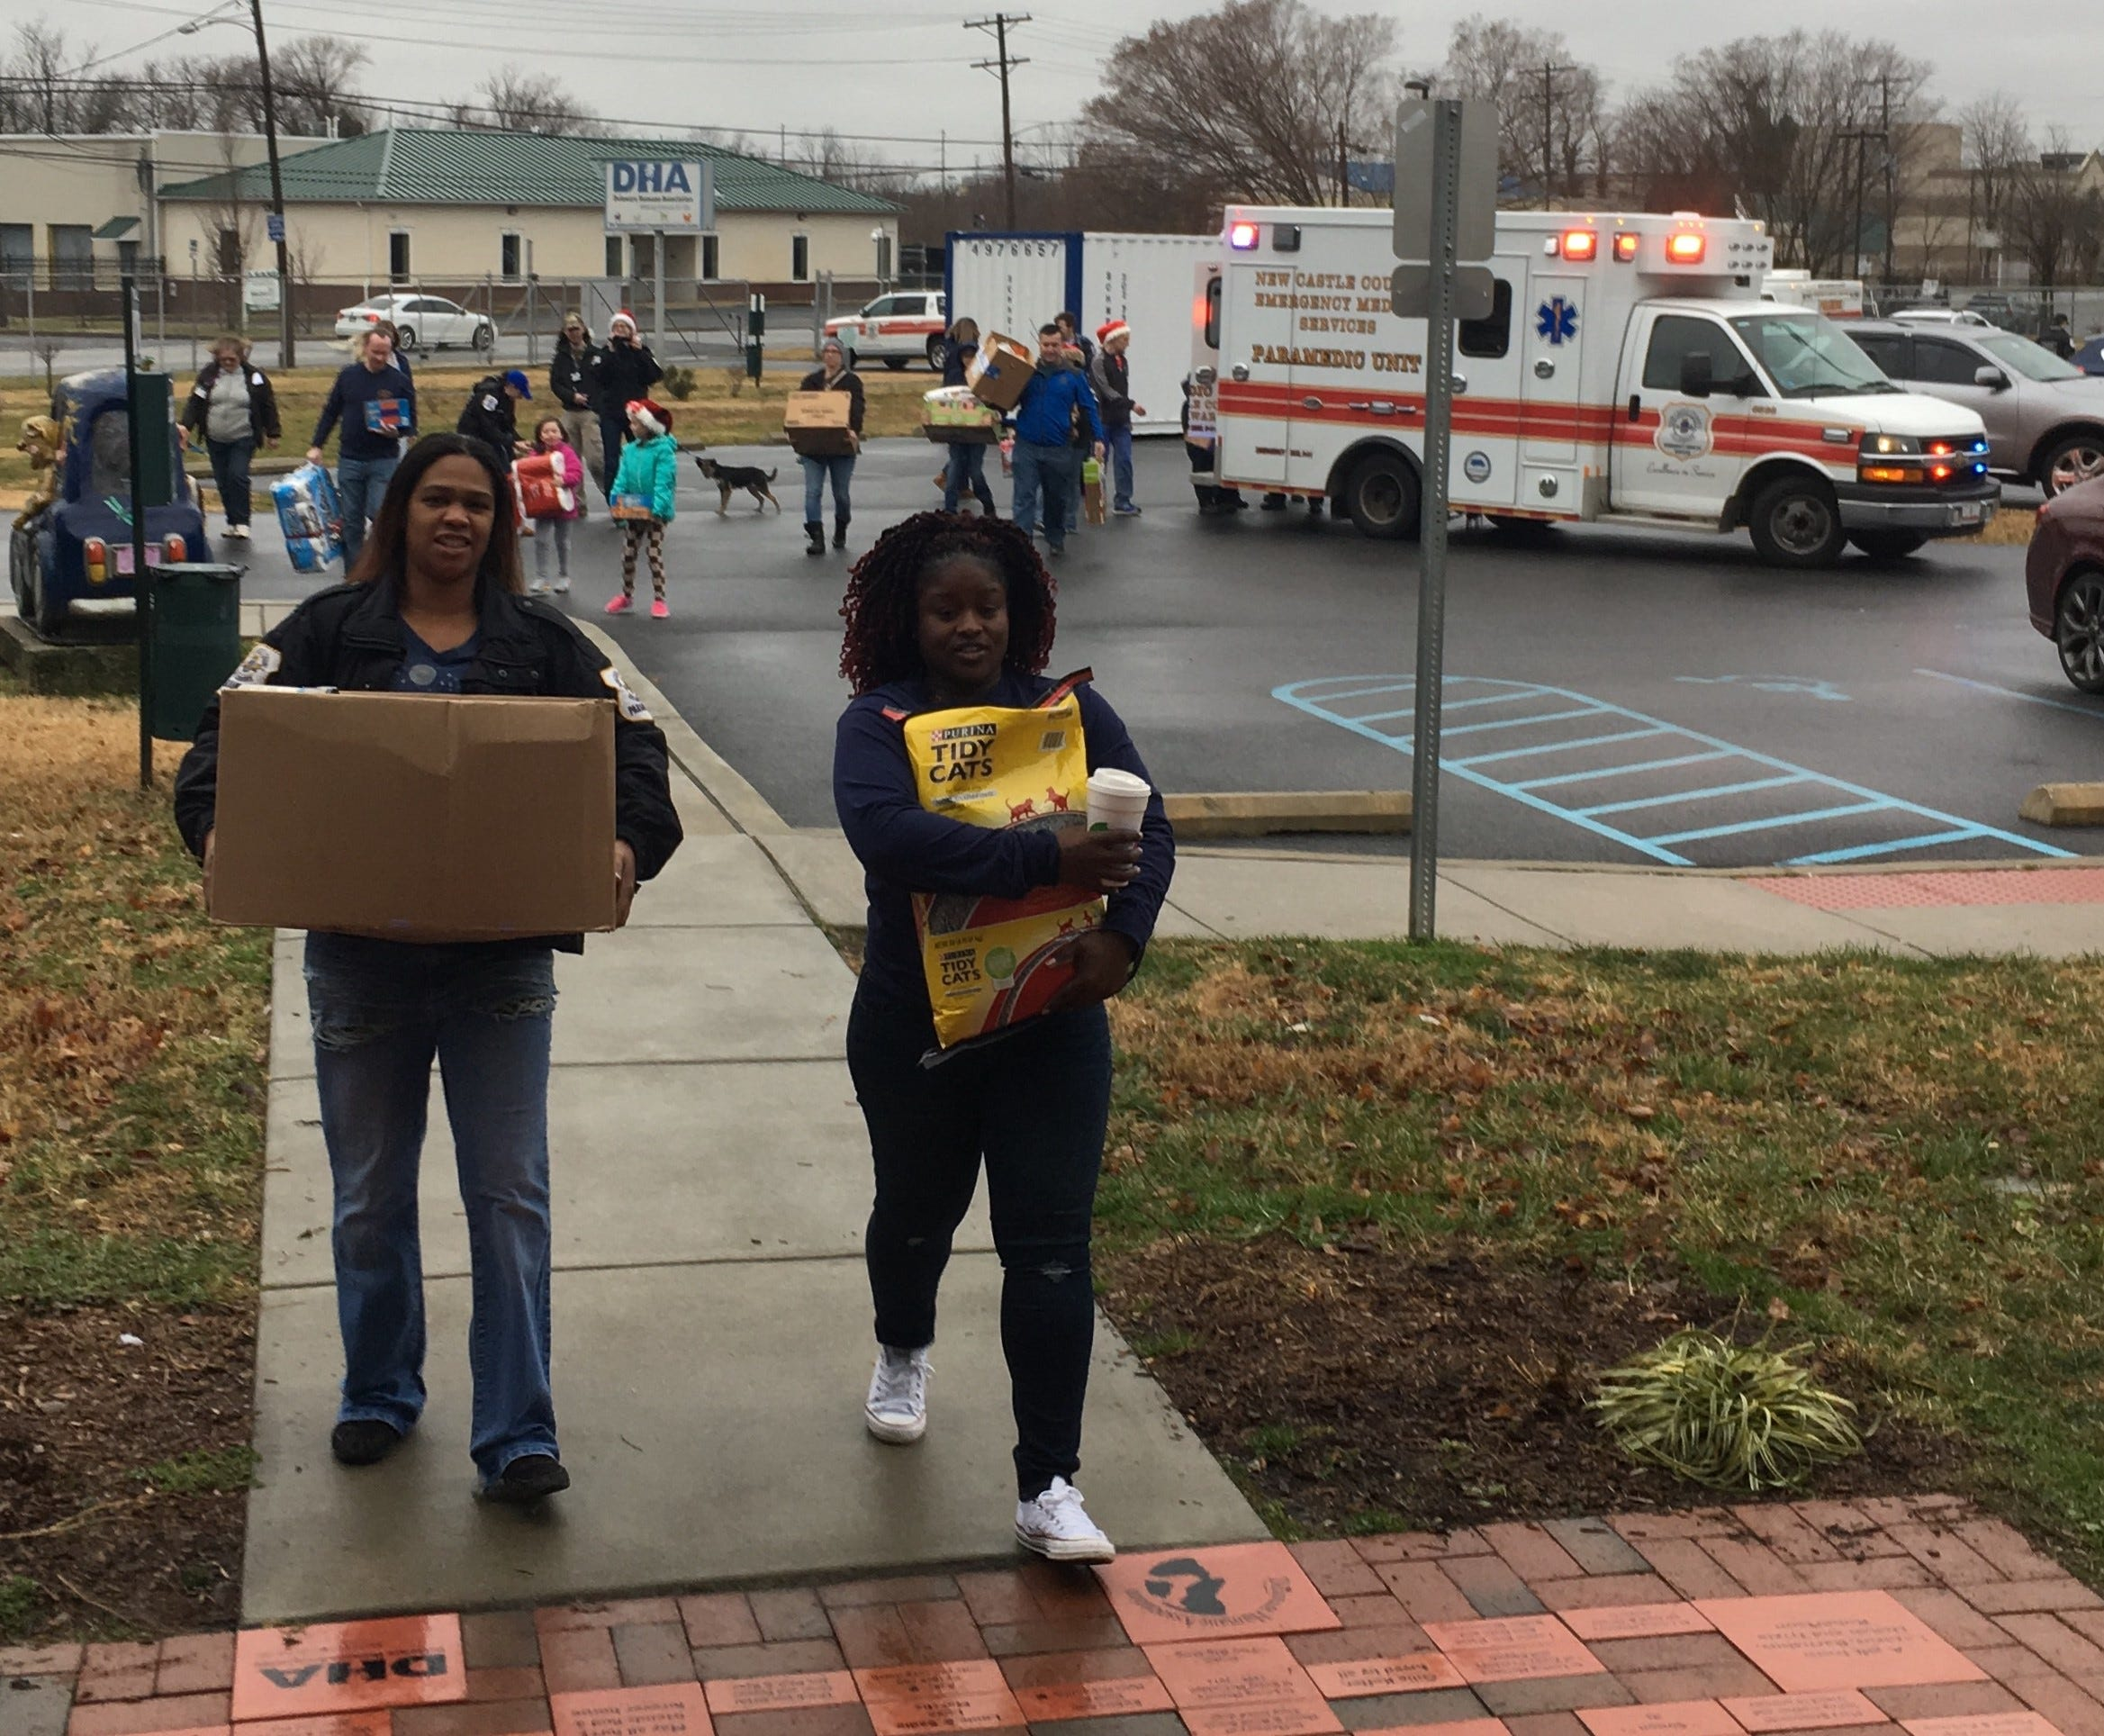 Two paramedics apply to adopt dogs after donating to Delaware Humane Association | Delaware Online